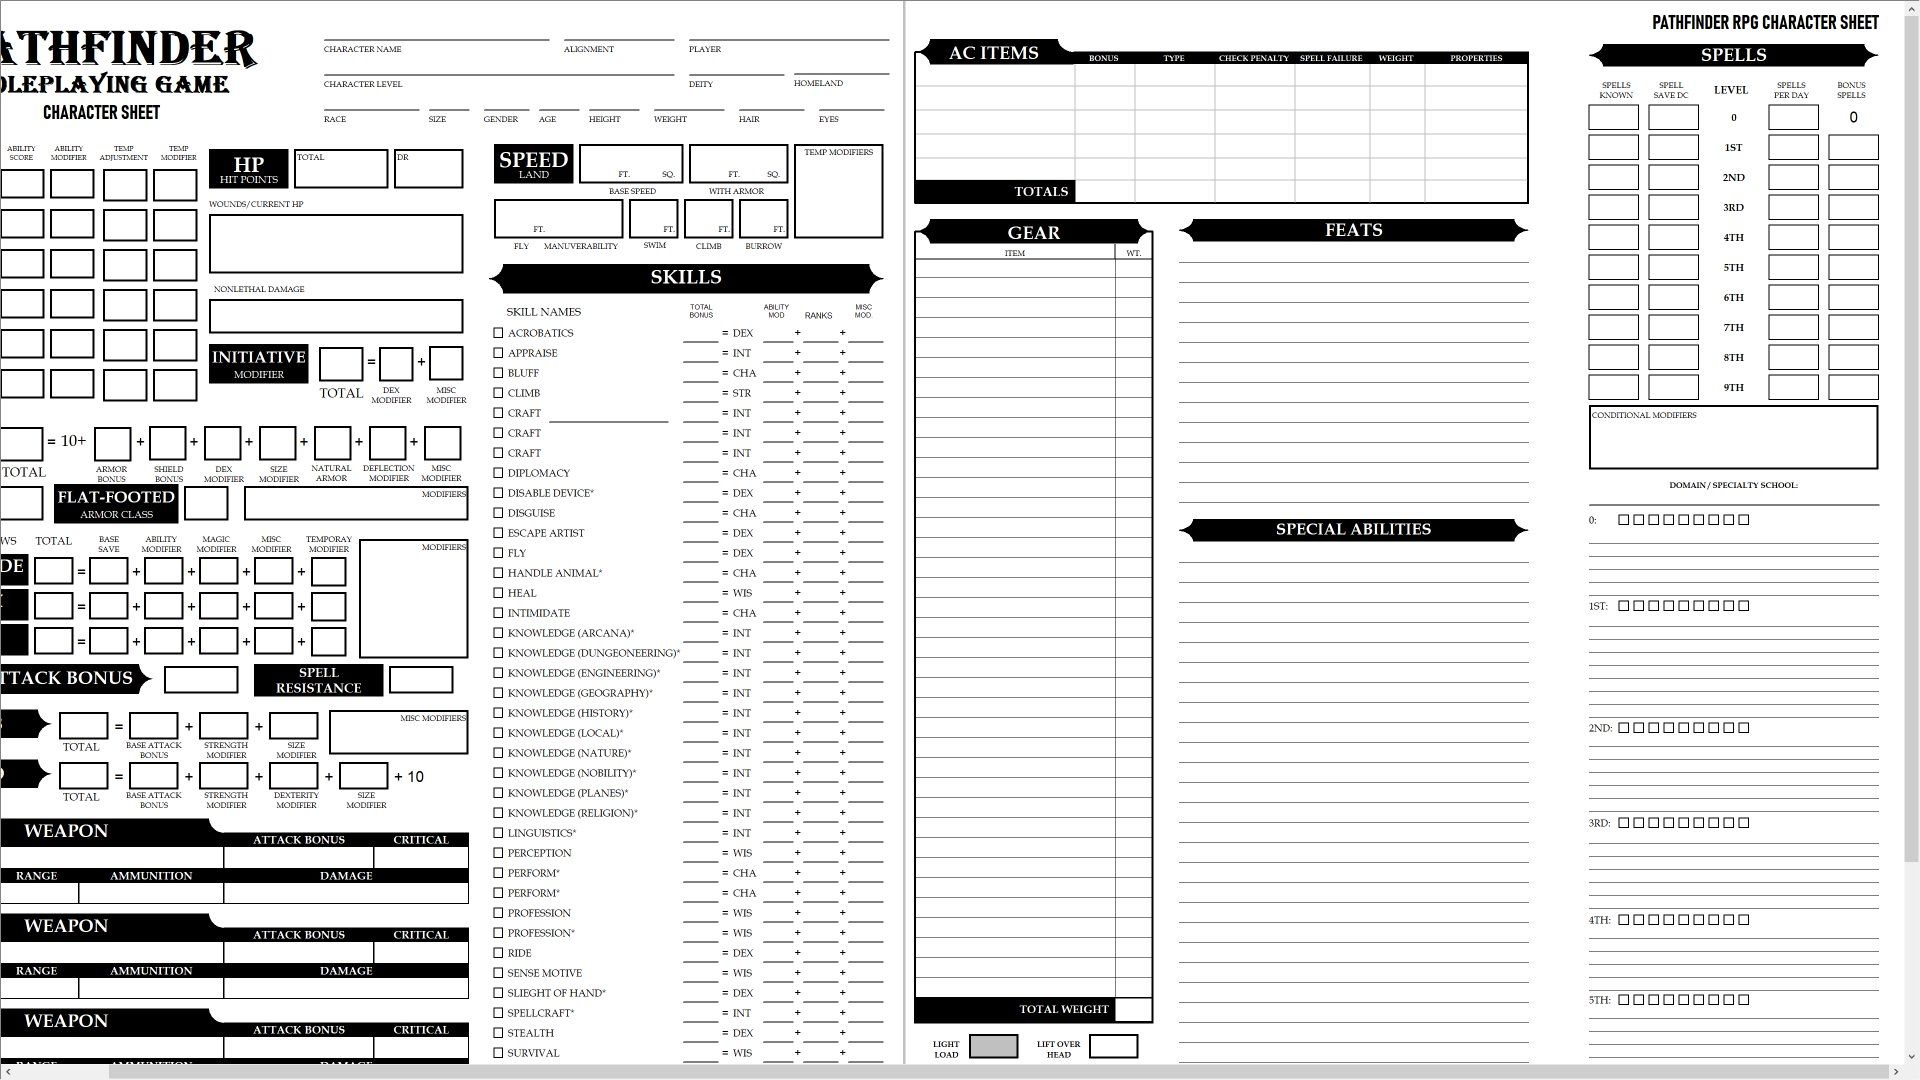 photo regarding Pathfinder Character Sheets Printable identify Pattern Pathfinder individuality sheet. SheetScribe is remaining made use of